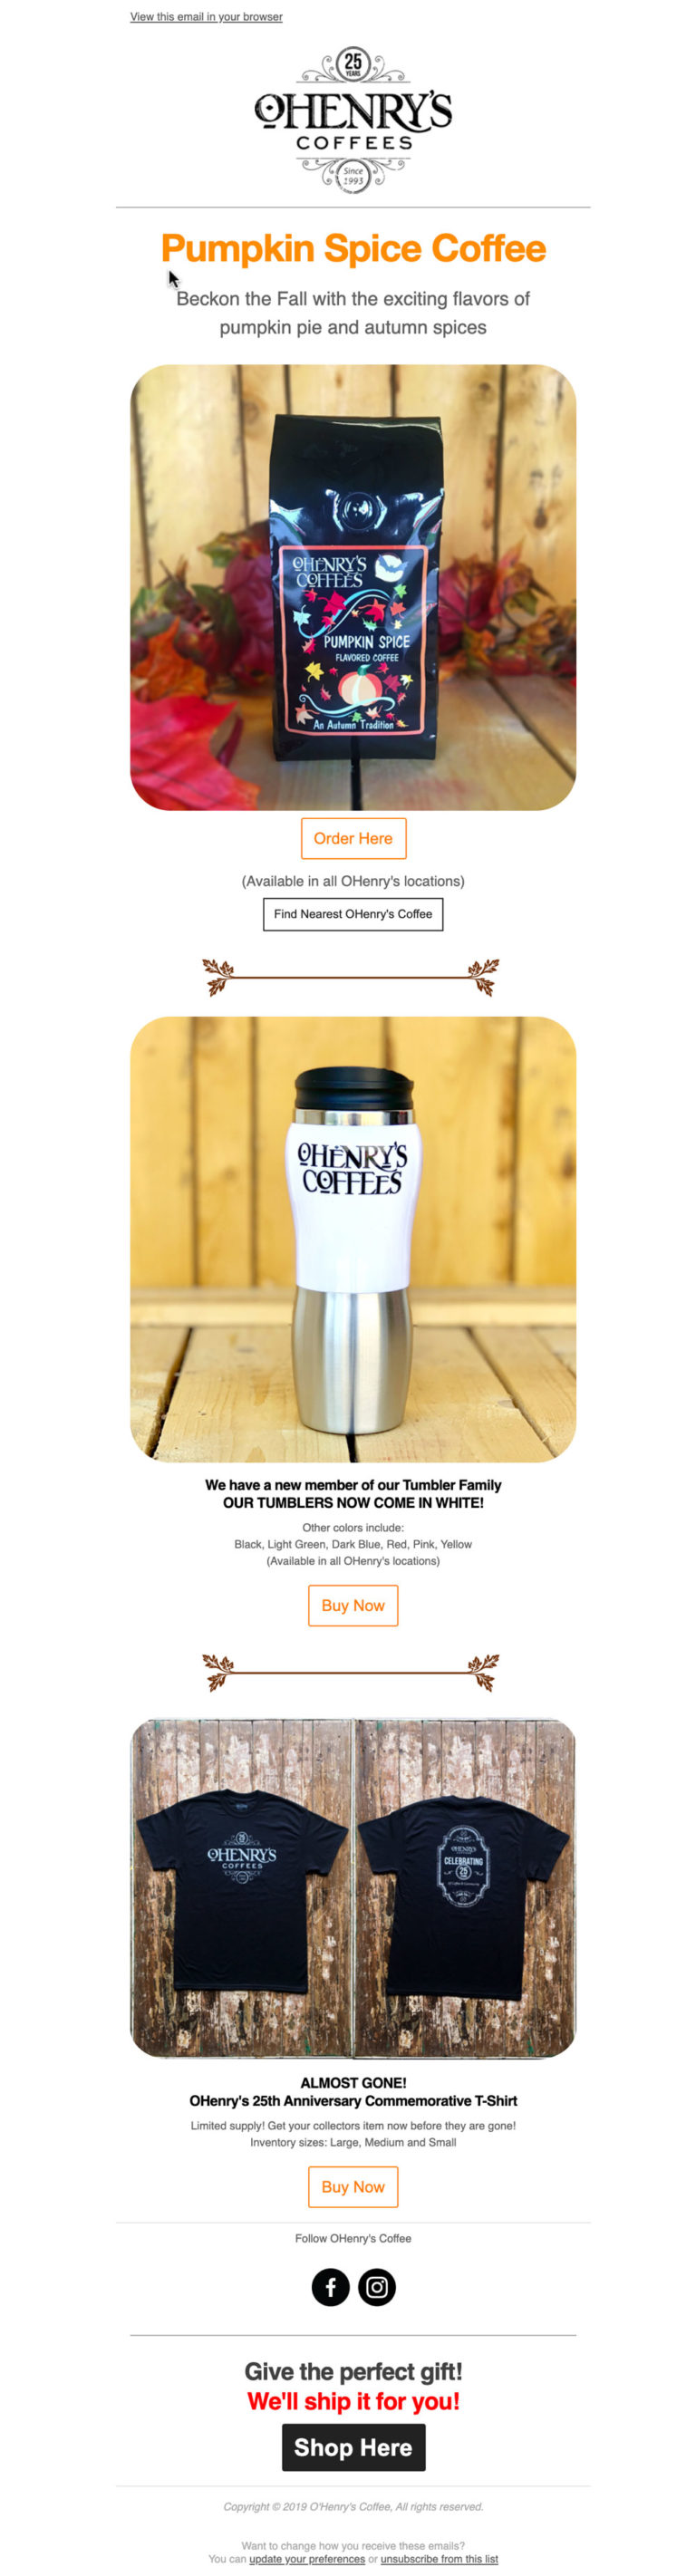 OHenry's Coffee Email